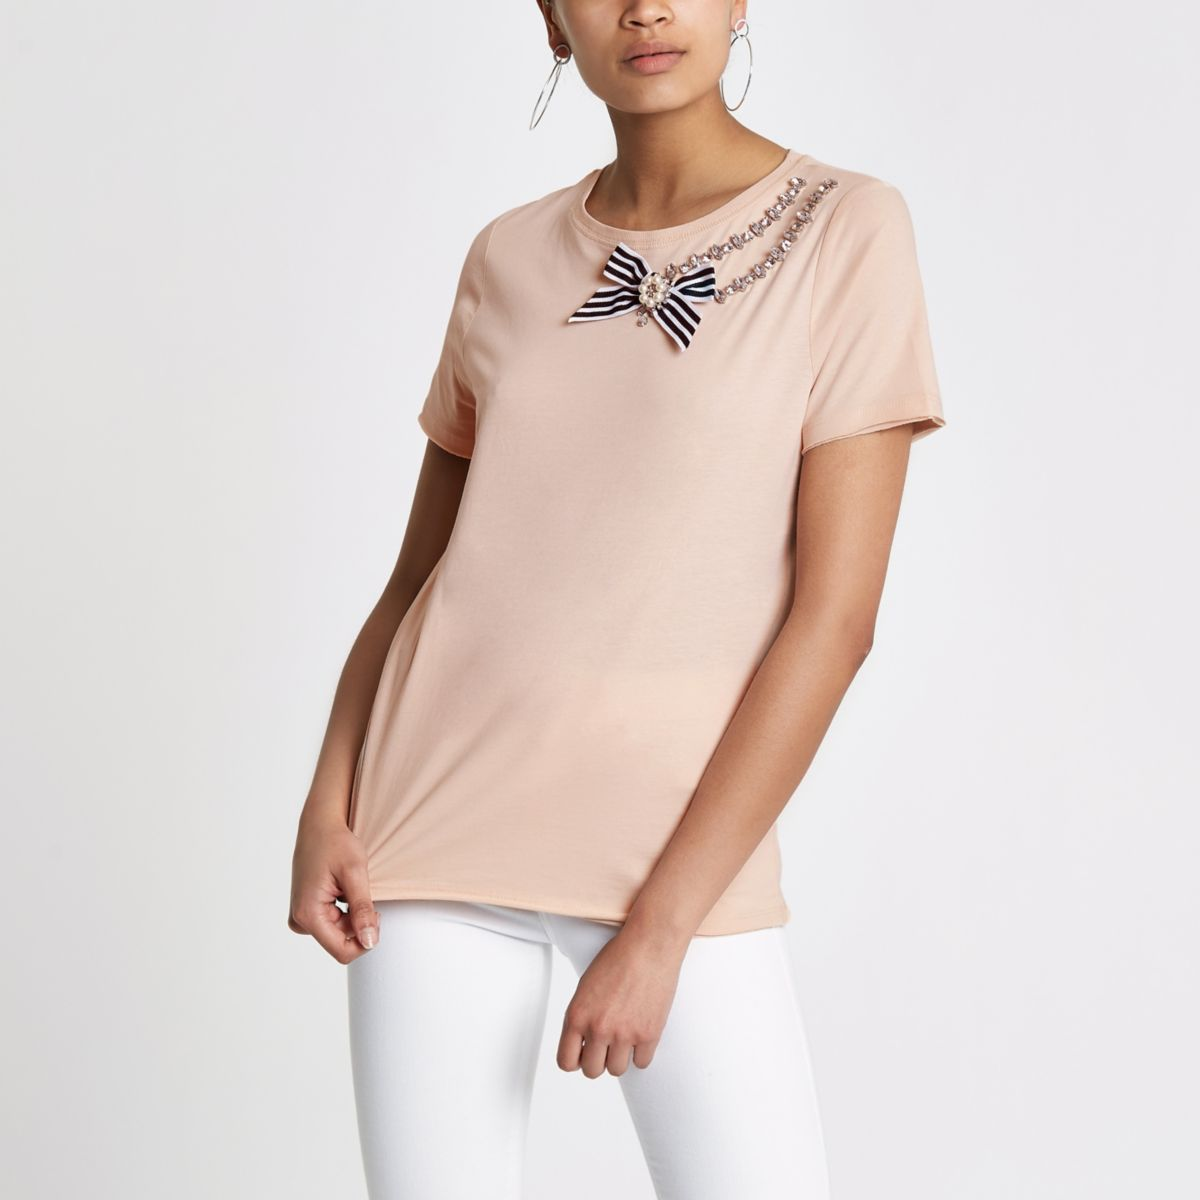 Womens Light Pink diamante bow trim T-shirt River Island Sneakernews Clearance Prices xvy4jCB